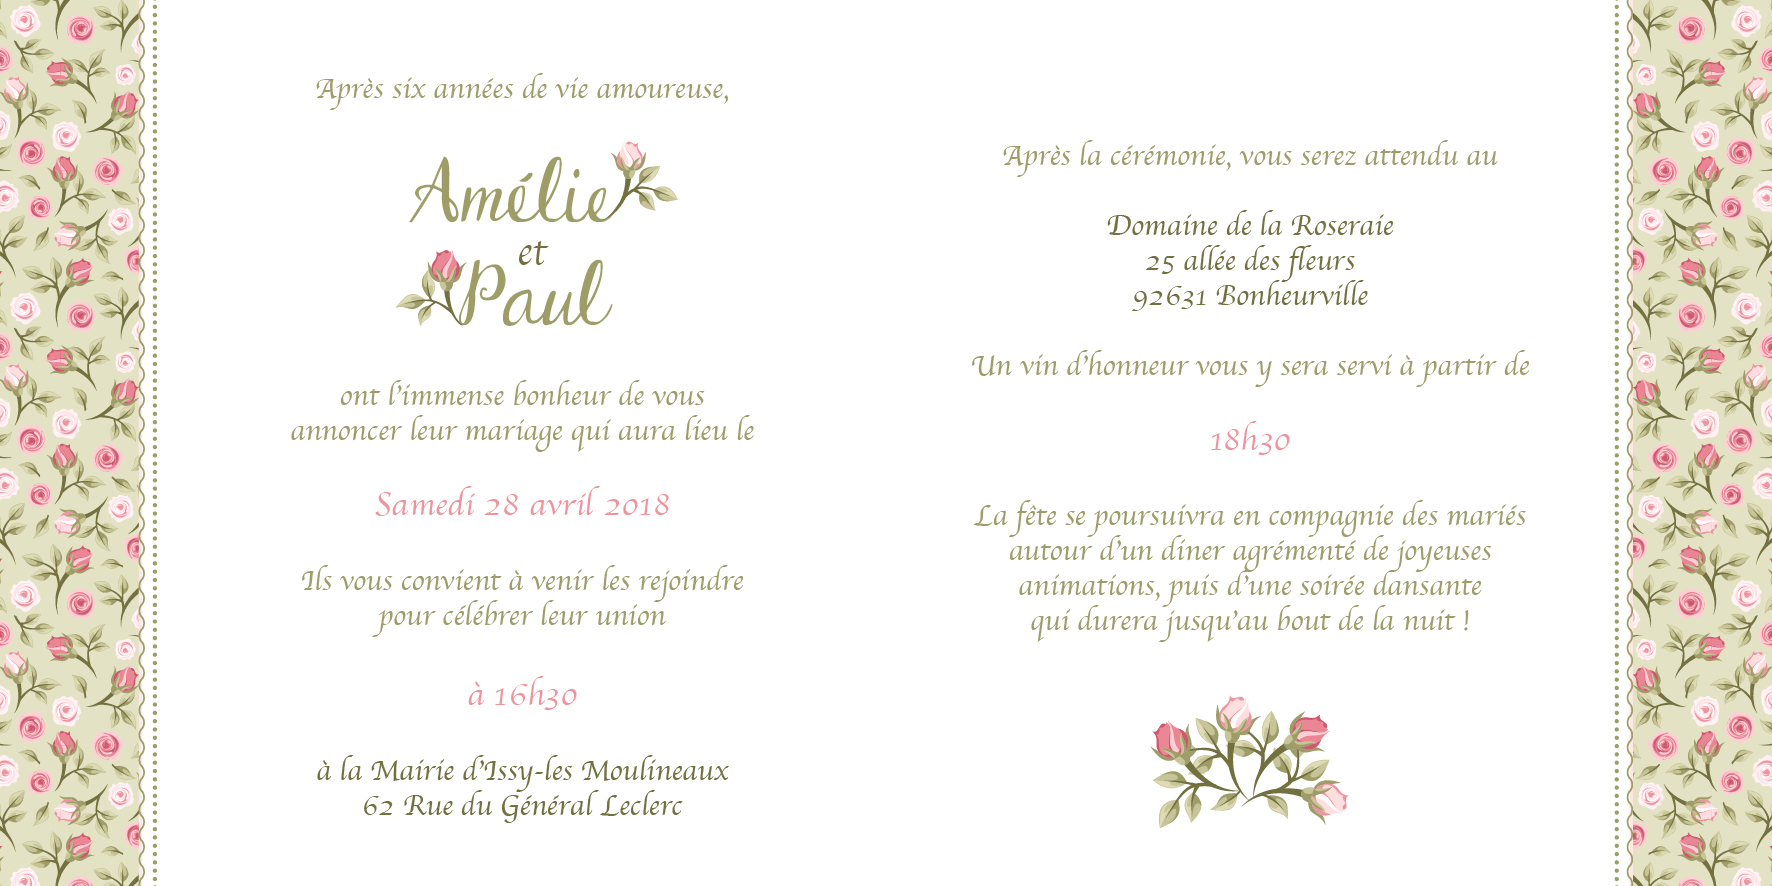 FP mariage - Les roses anciennes -Vert- page 2-3